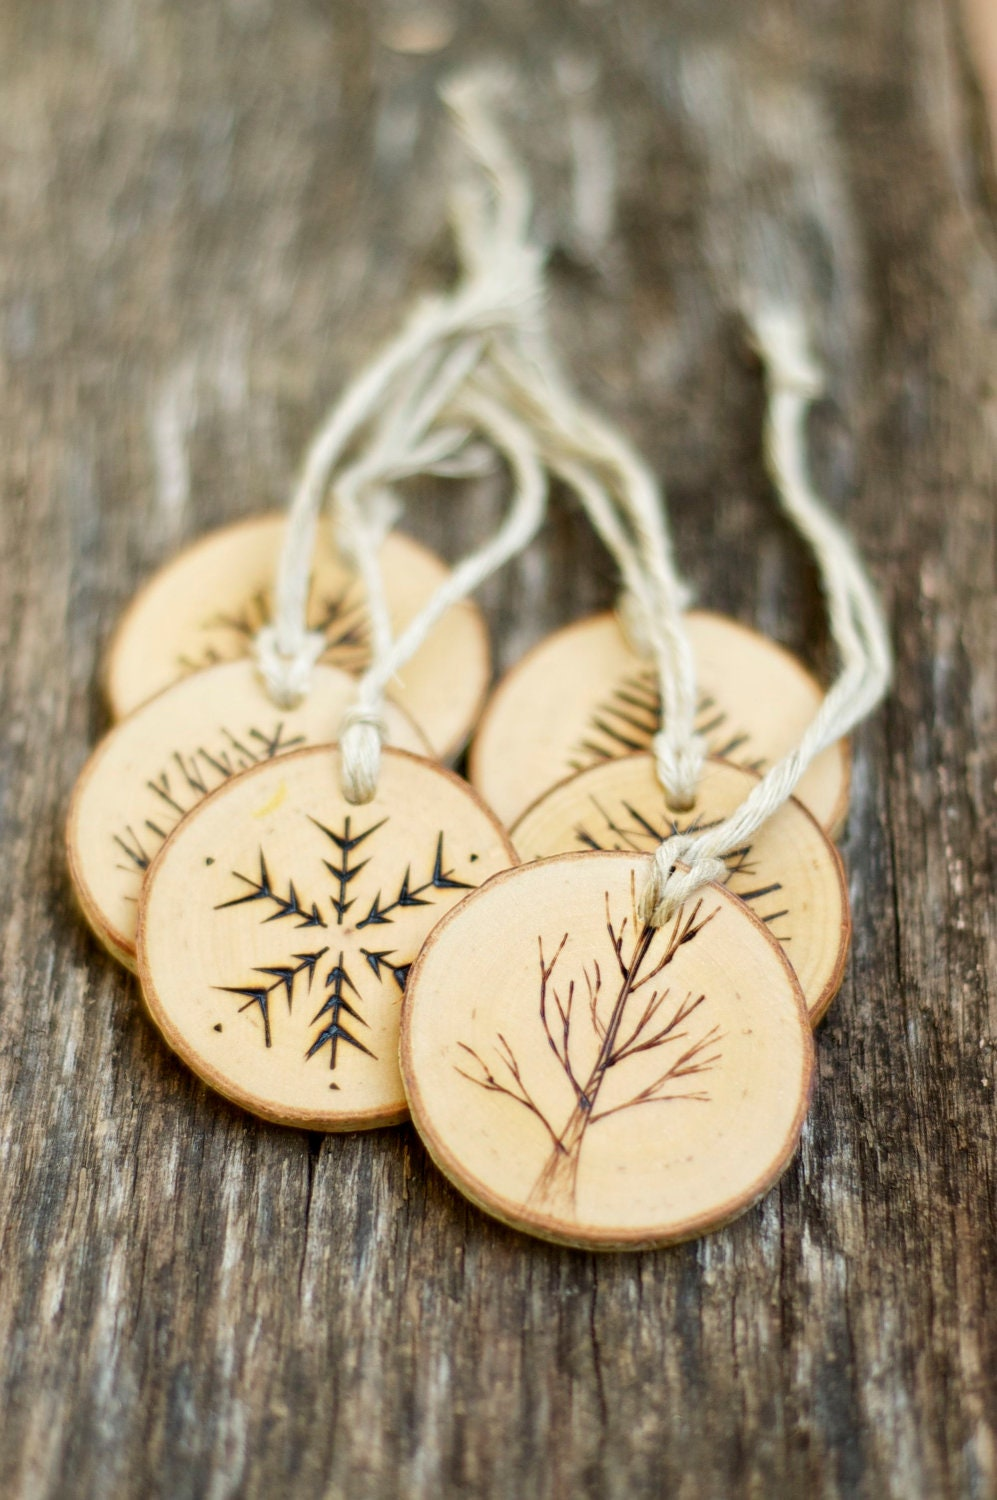 Rustic Christmas Ornaments Rustic Christmas Ornaments Images Reverse Search